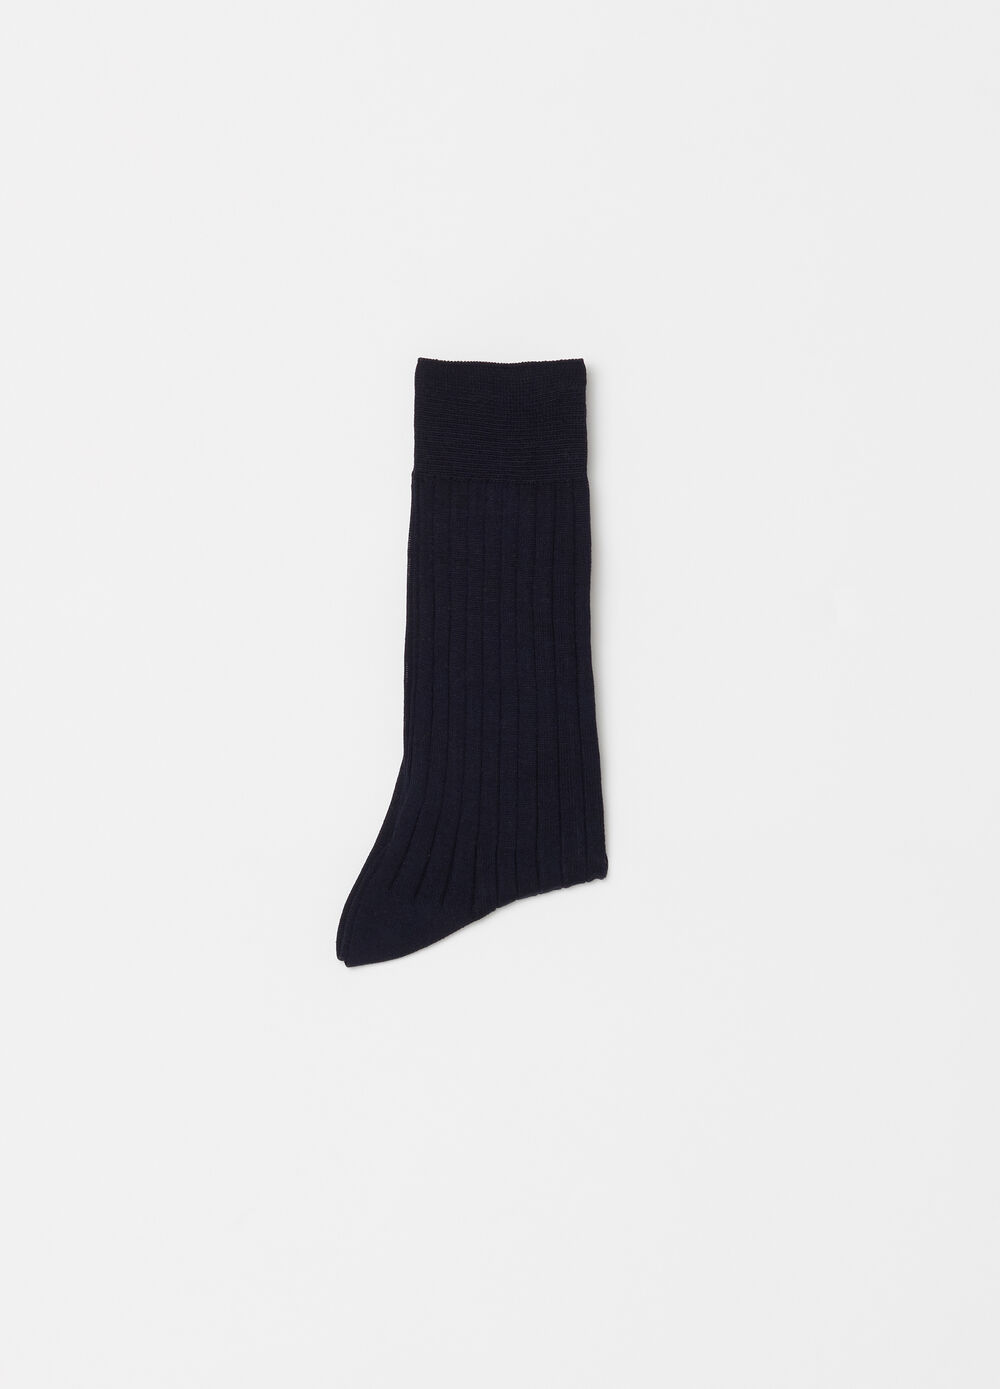 Short socks in lisle cotton